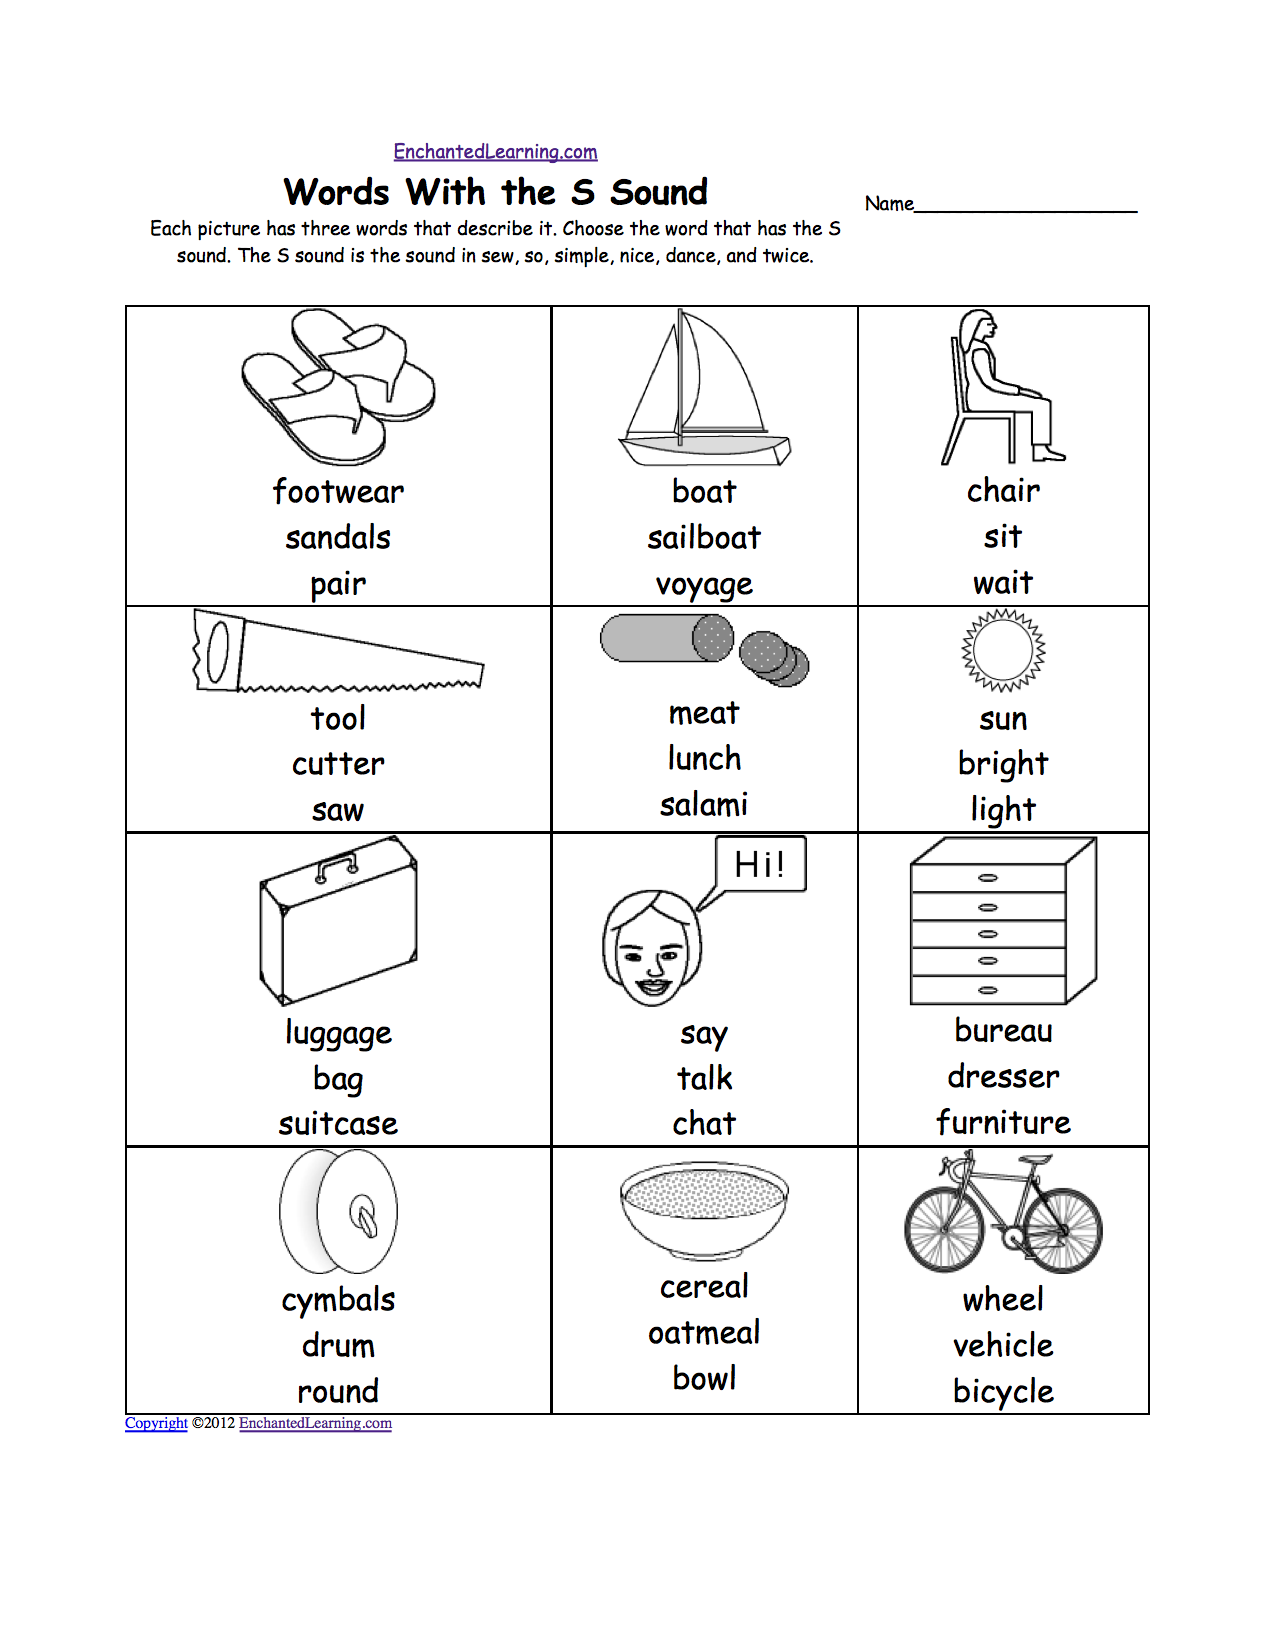 Worksheets S Sound Worksheets letter s alphabet activities at enchantedlearning com phonics worksheet multiple choice each picture has three words that describe it choose the word sound